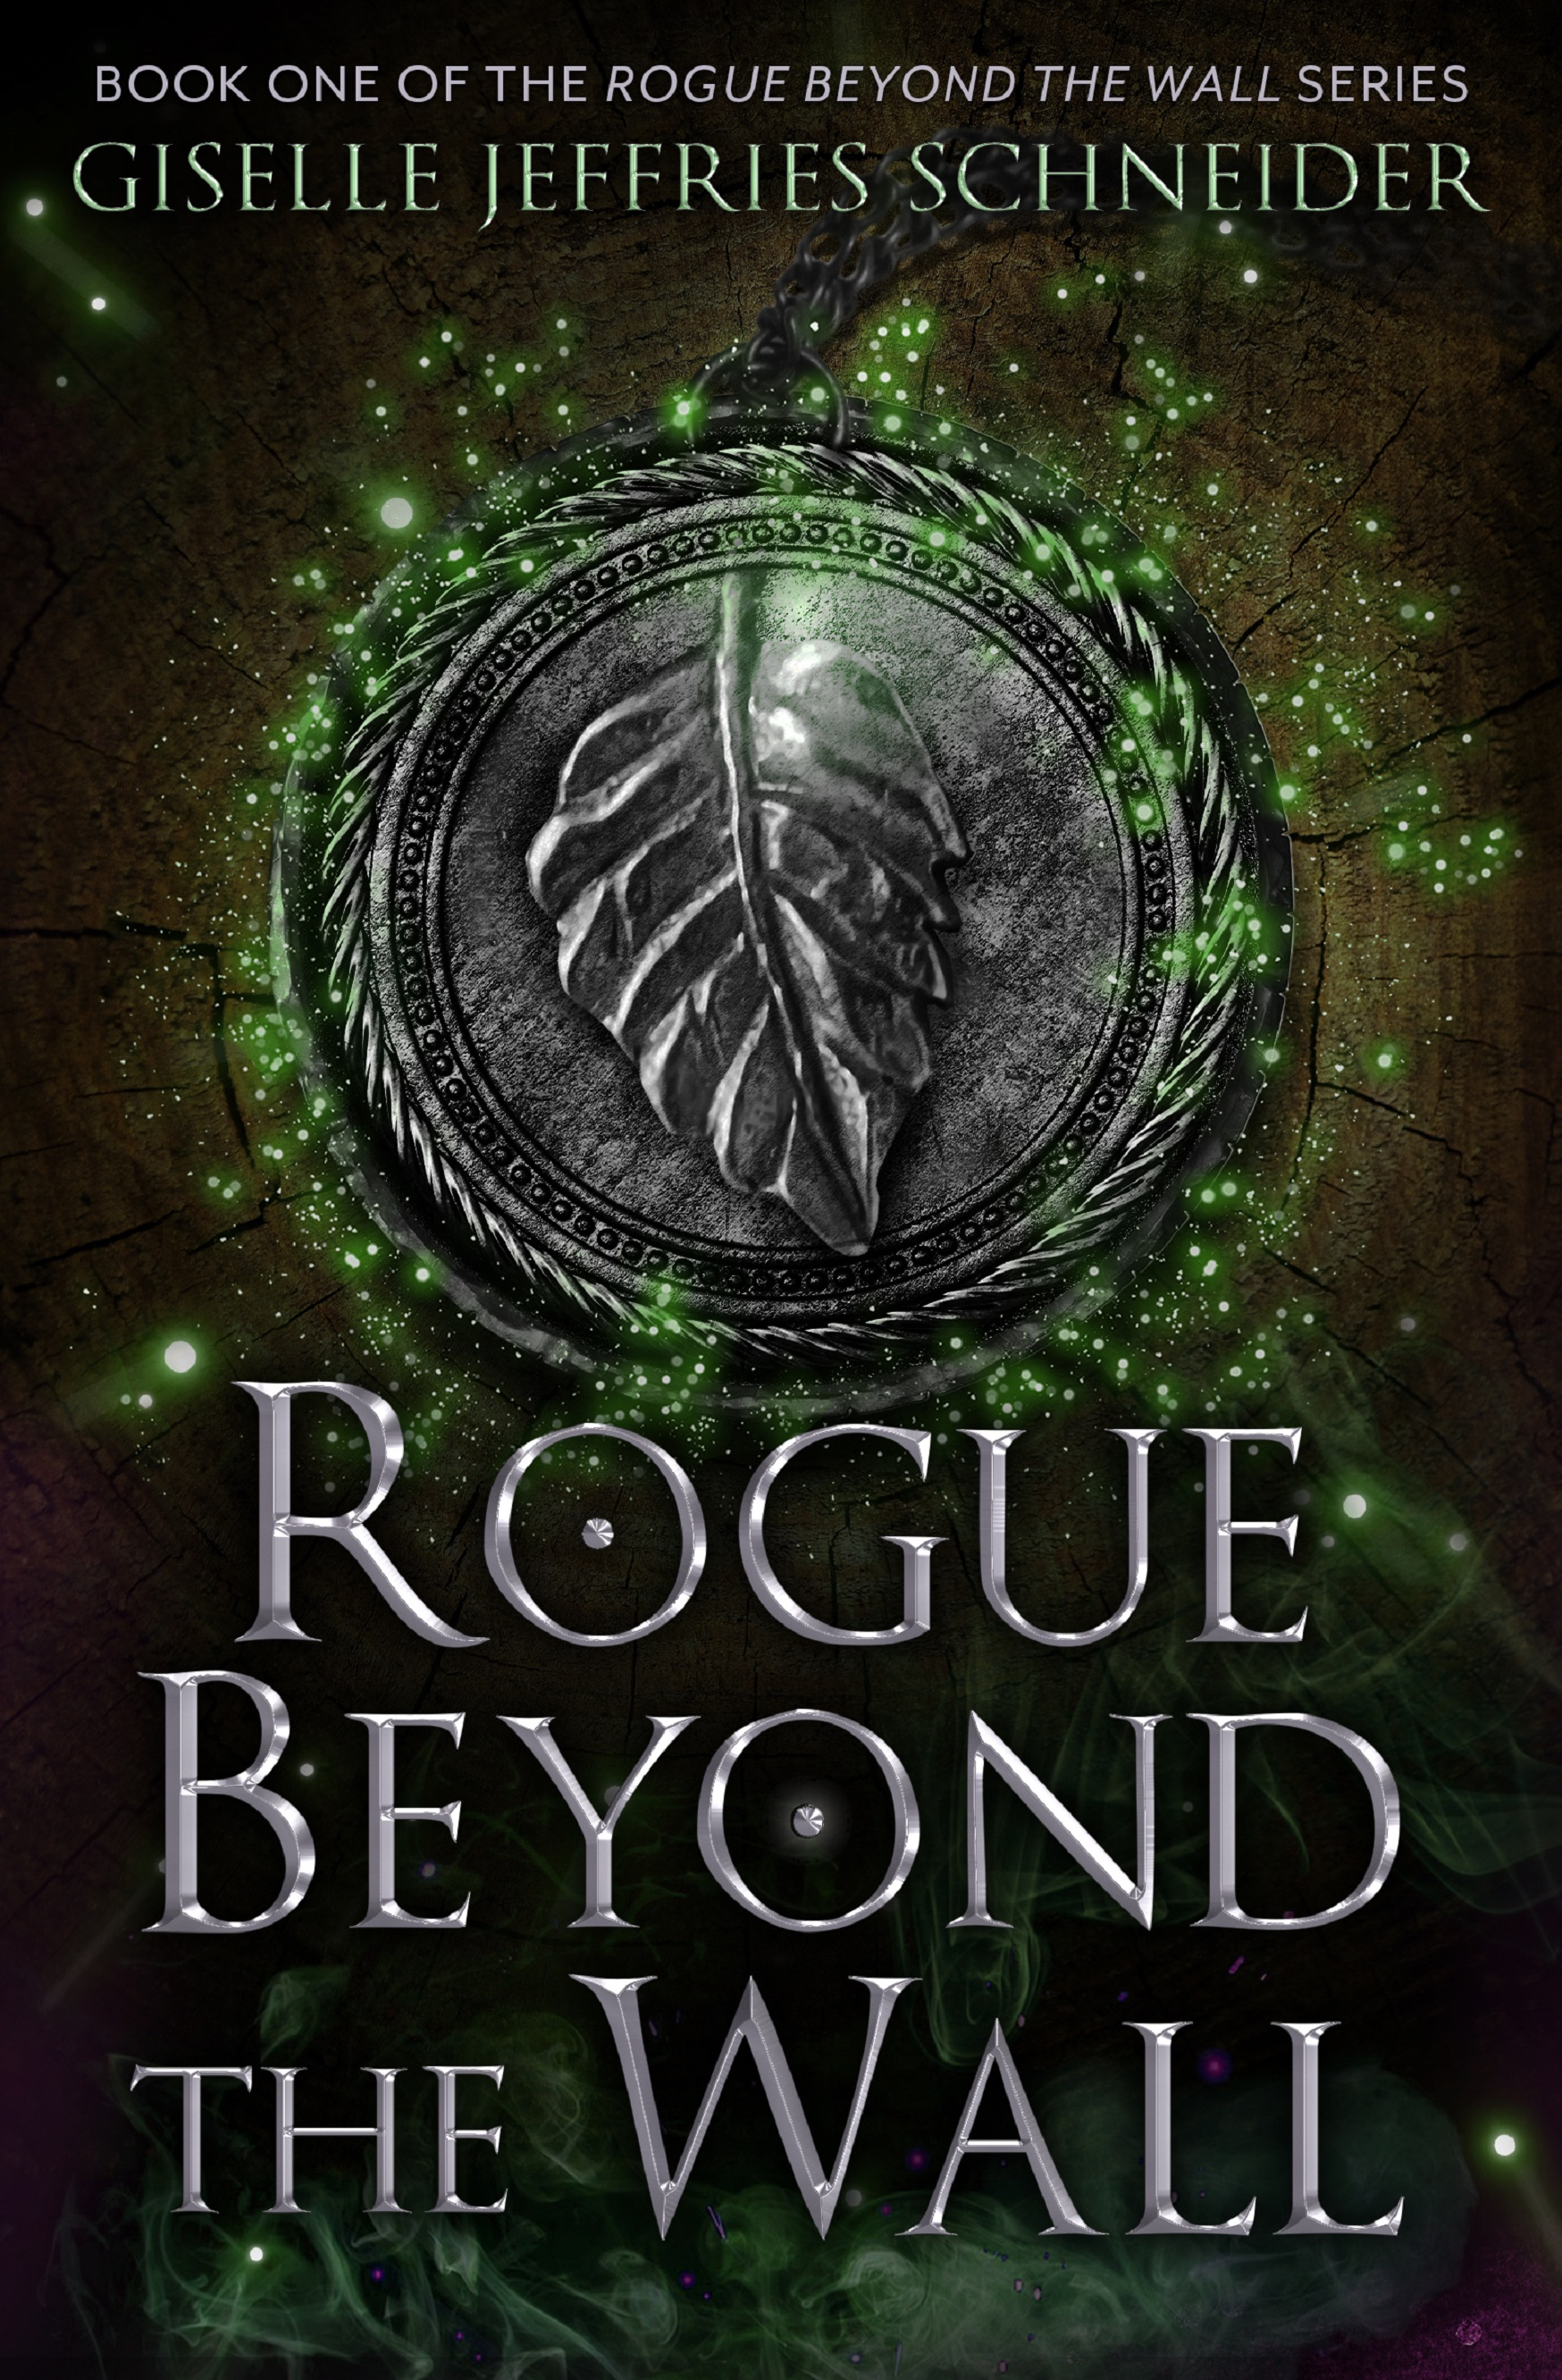 [PDF] [EPUB] Rogue Beyond the Wall (The Rogue Beyond the Wall, #1) Download by Giselle Jeffries Schneider